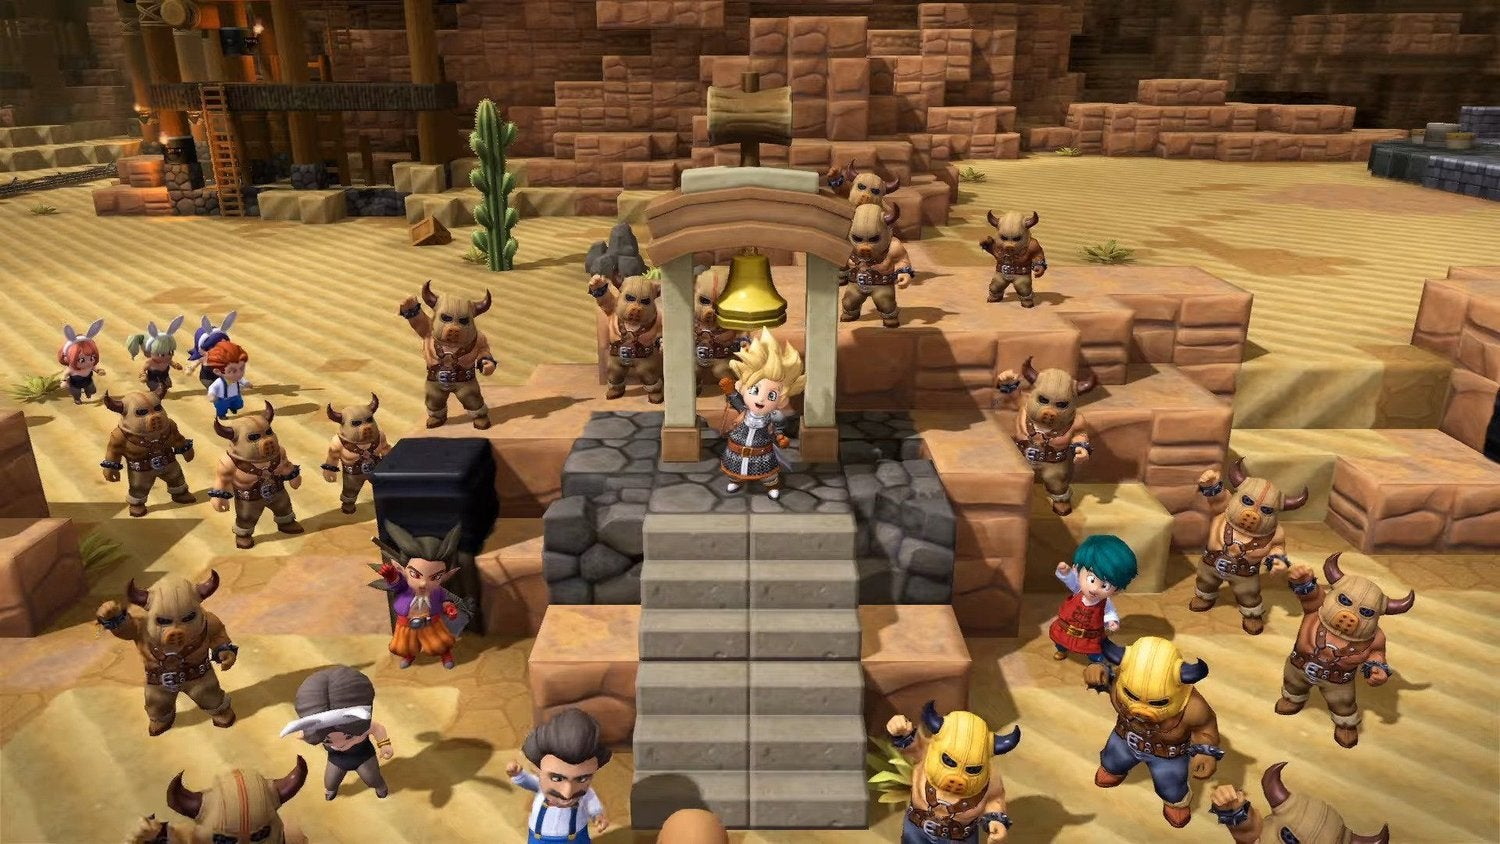 Wait, I Played Dragon Quest Builders 2 And Need To Change My GOTY List